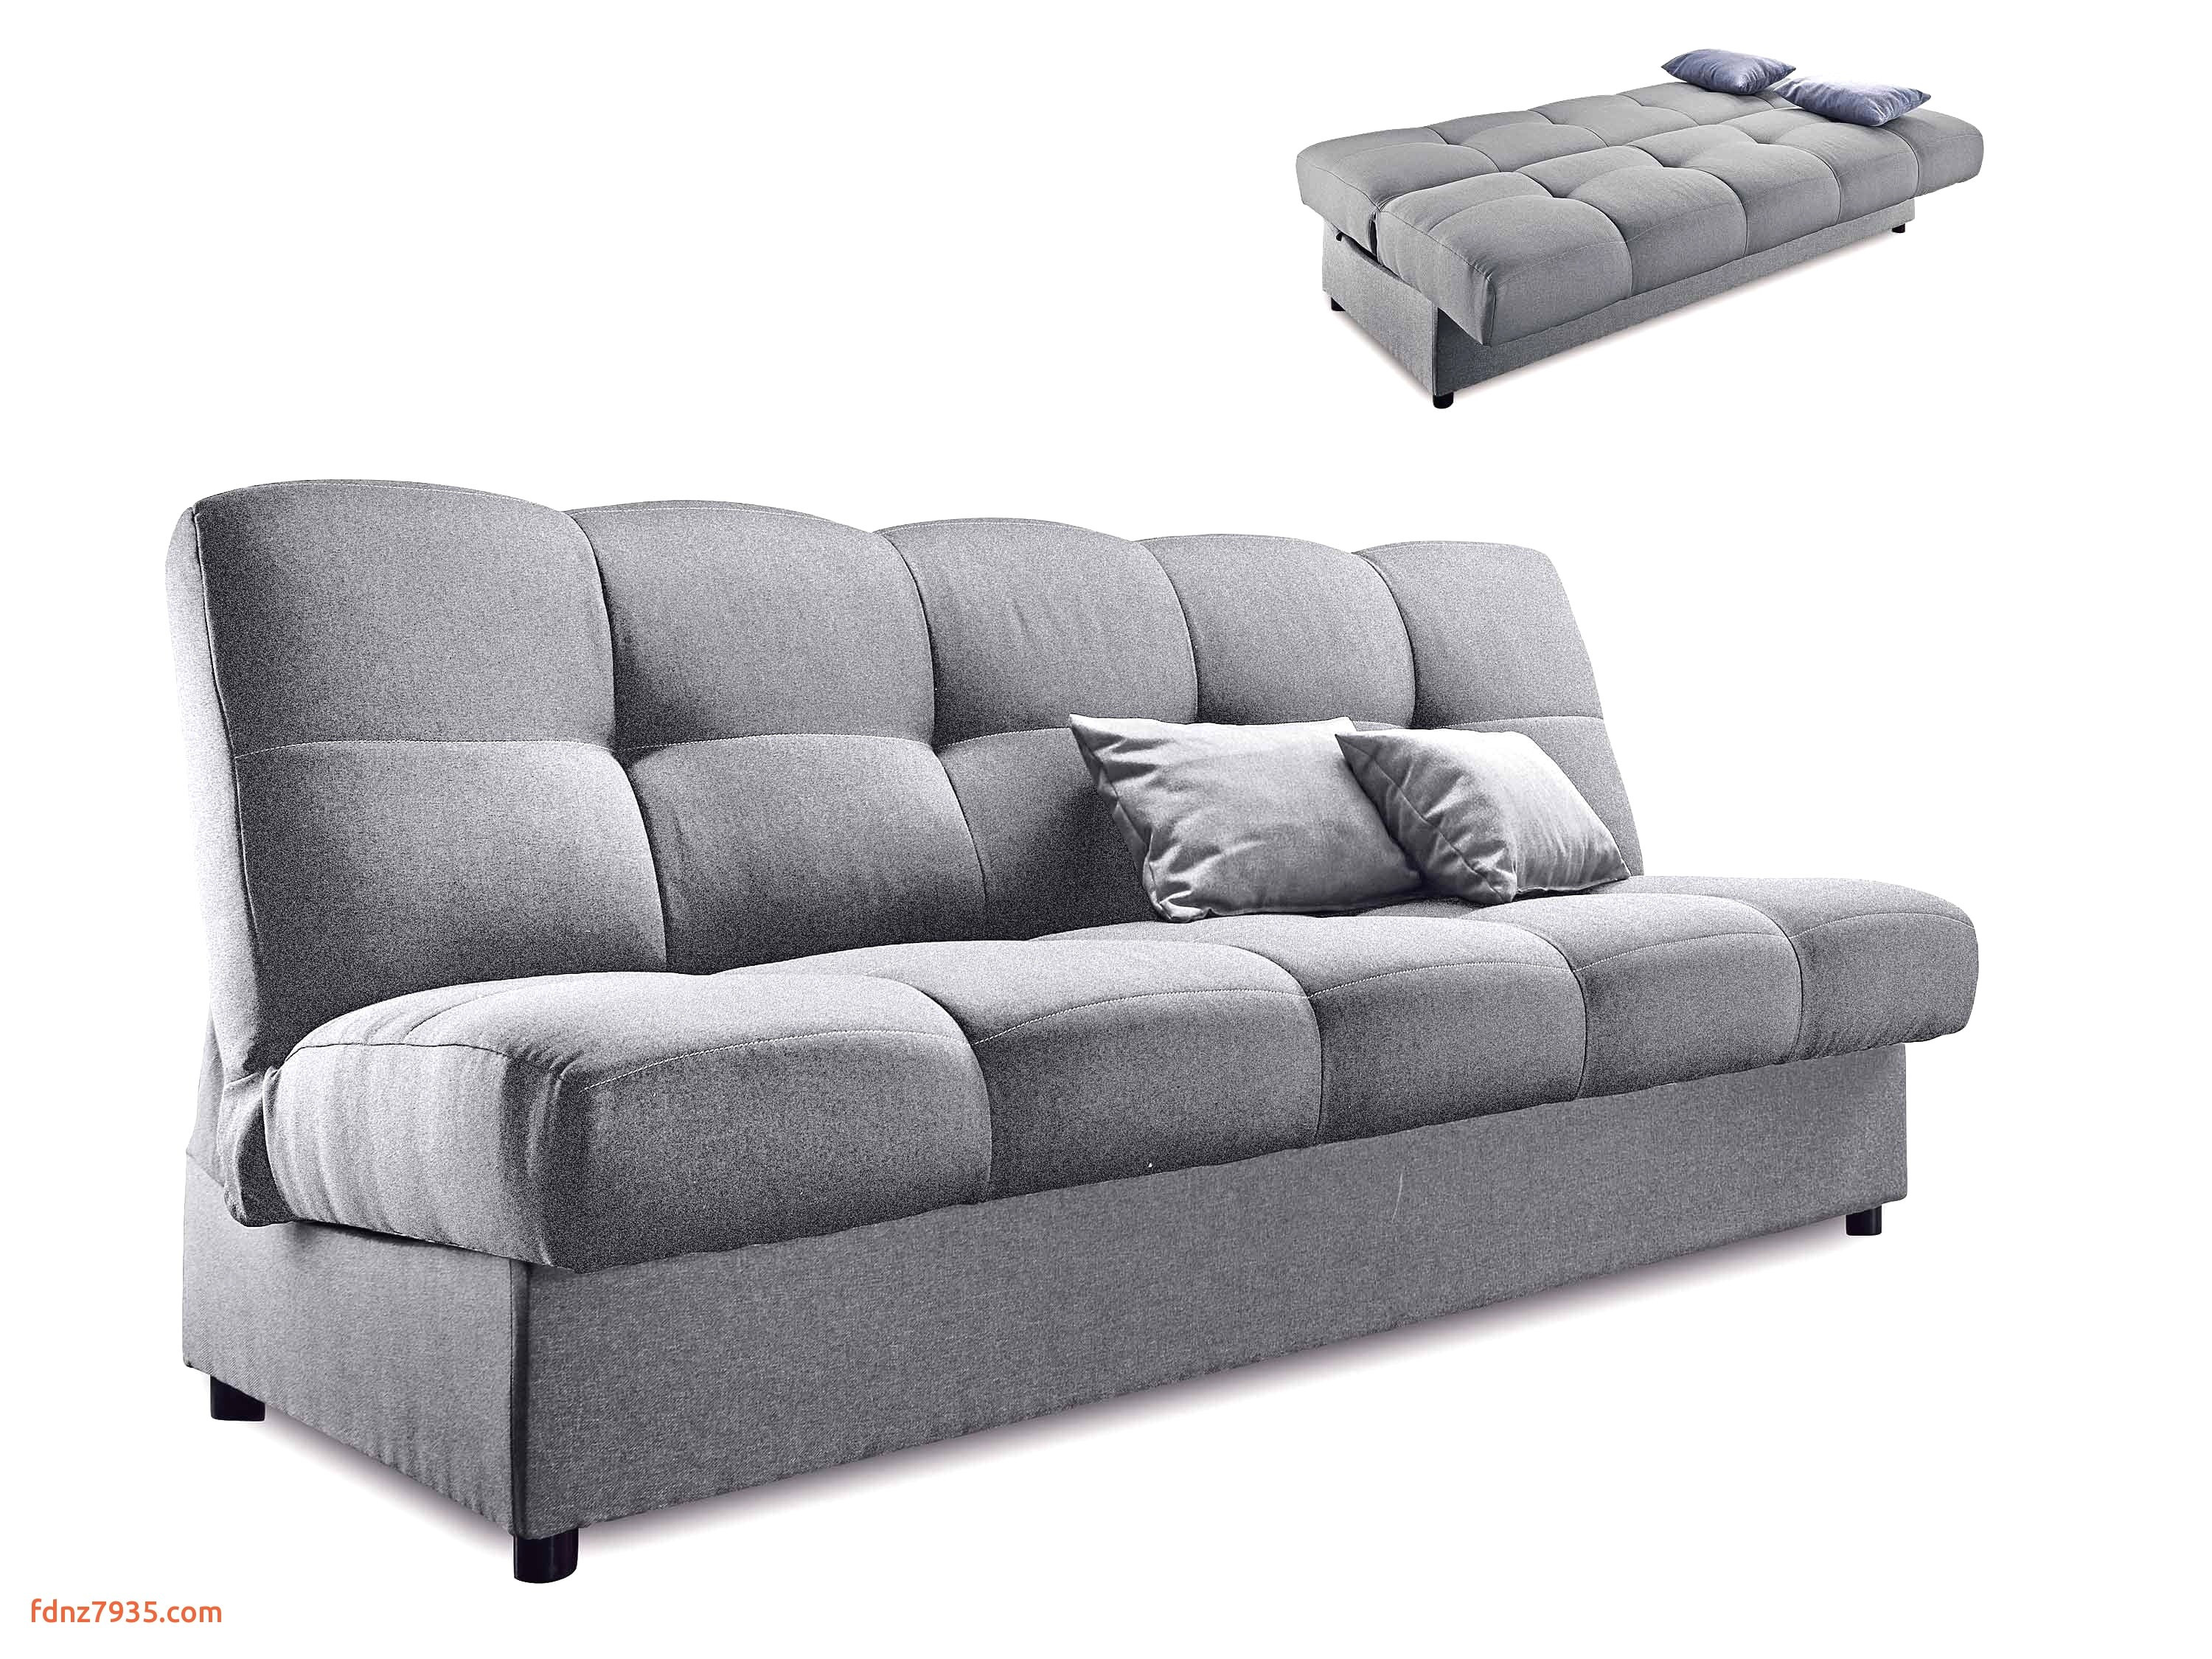 sleeper sofa reviews beautiful fortable futon sofa bed unique futon fabrik 0d stichworte